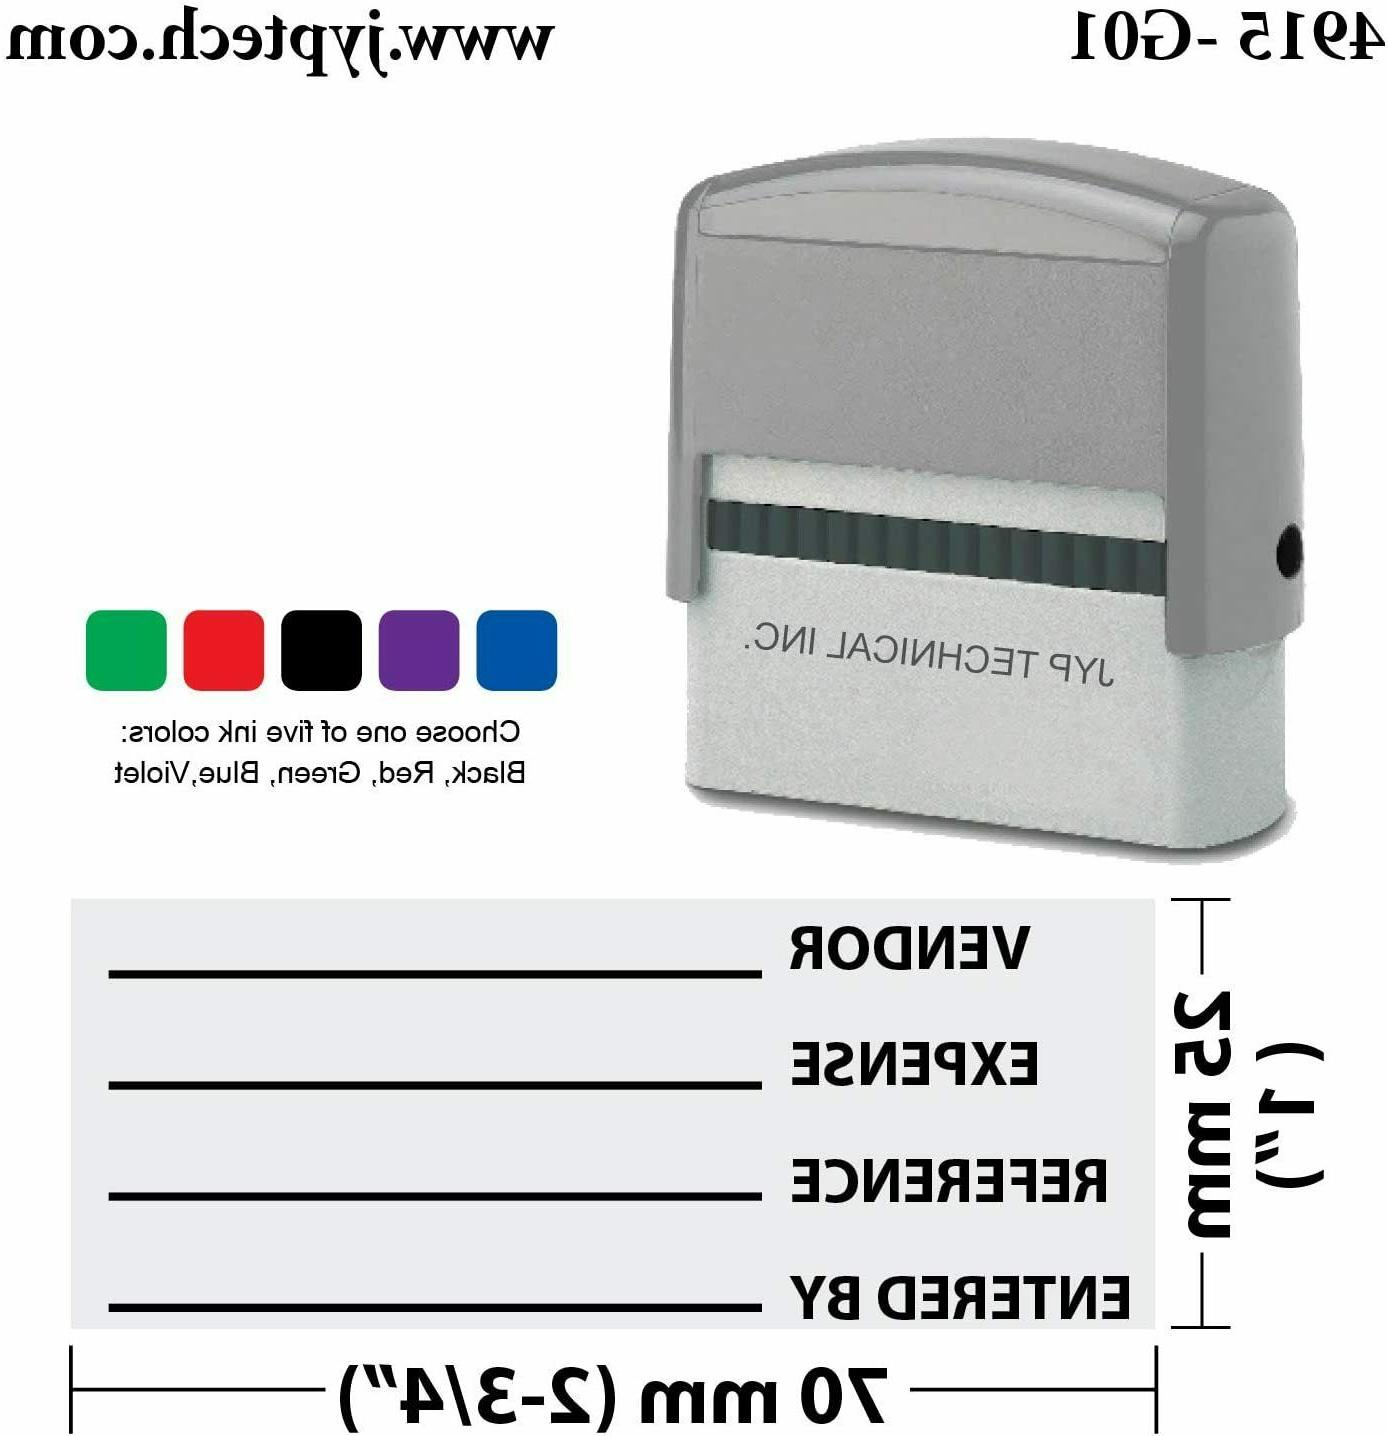 jyp pa2860 pre inked rubber stamp w